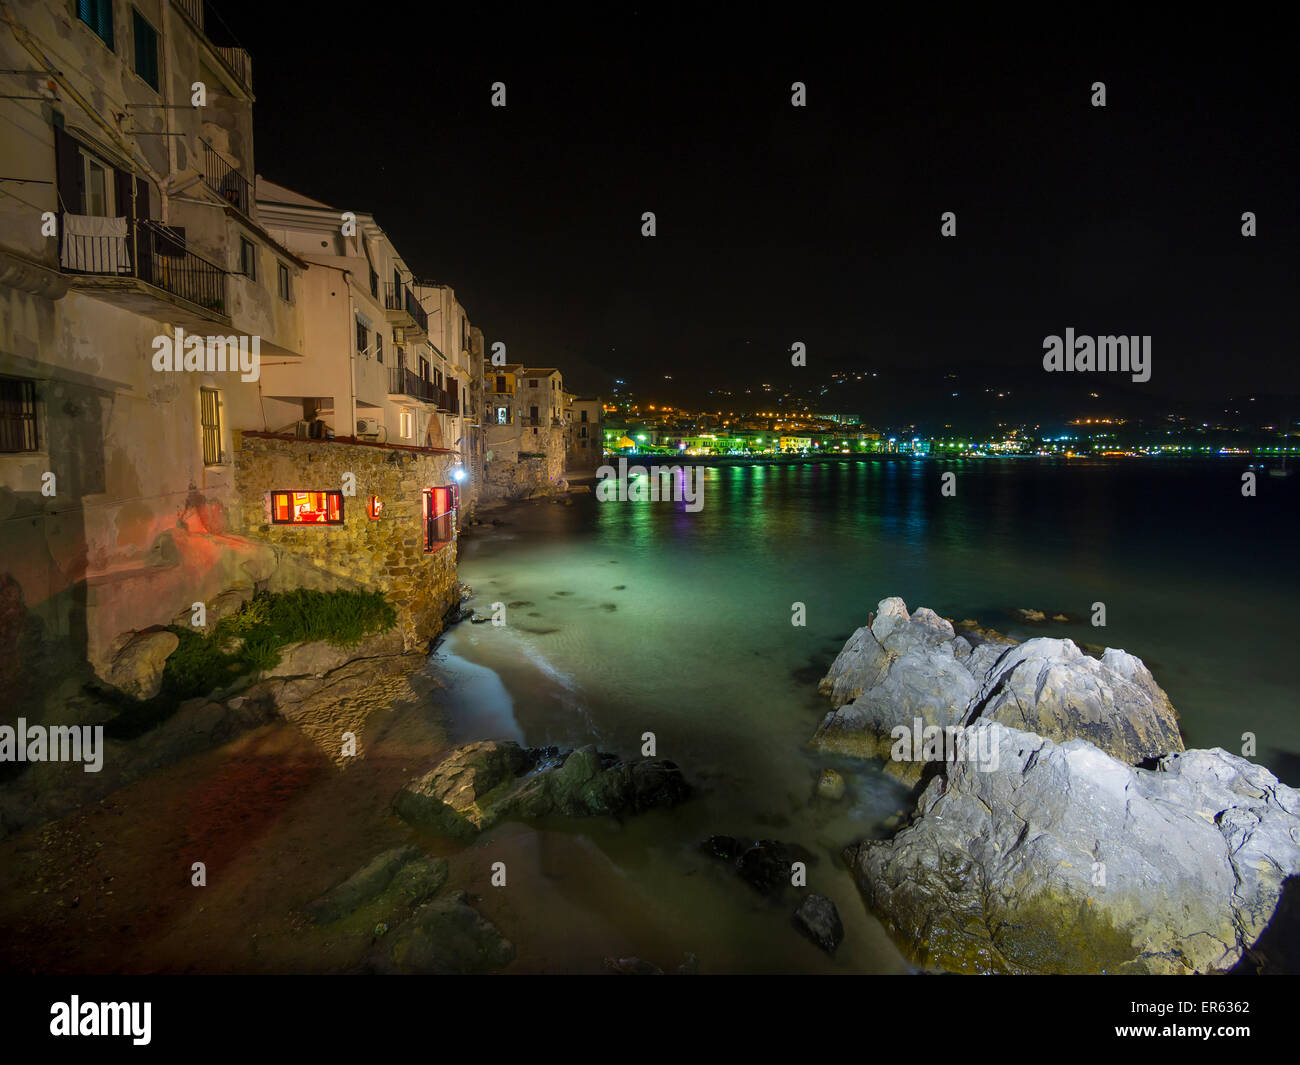 Medieval houses on the beach of Cefalu at night, Cefalu, Province of Palermo, Sicily, Italy - Stock Image